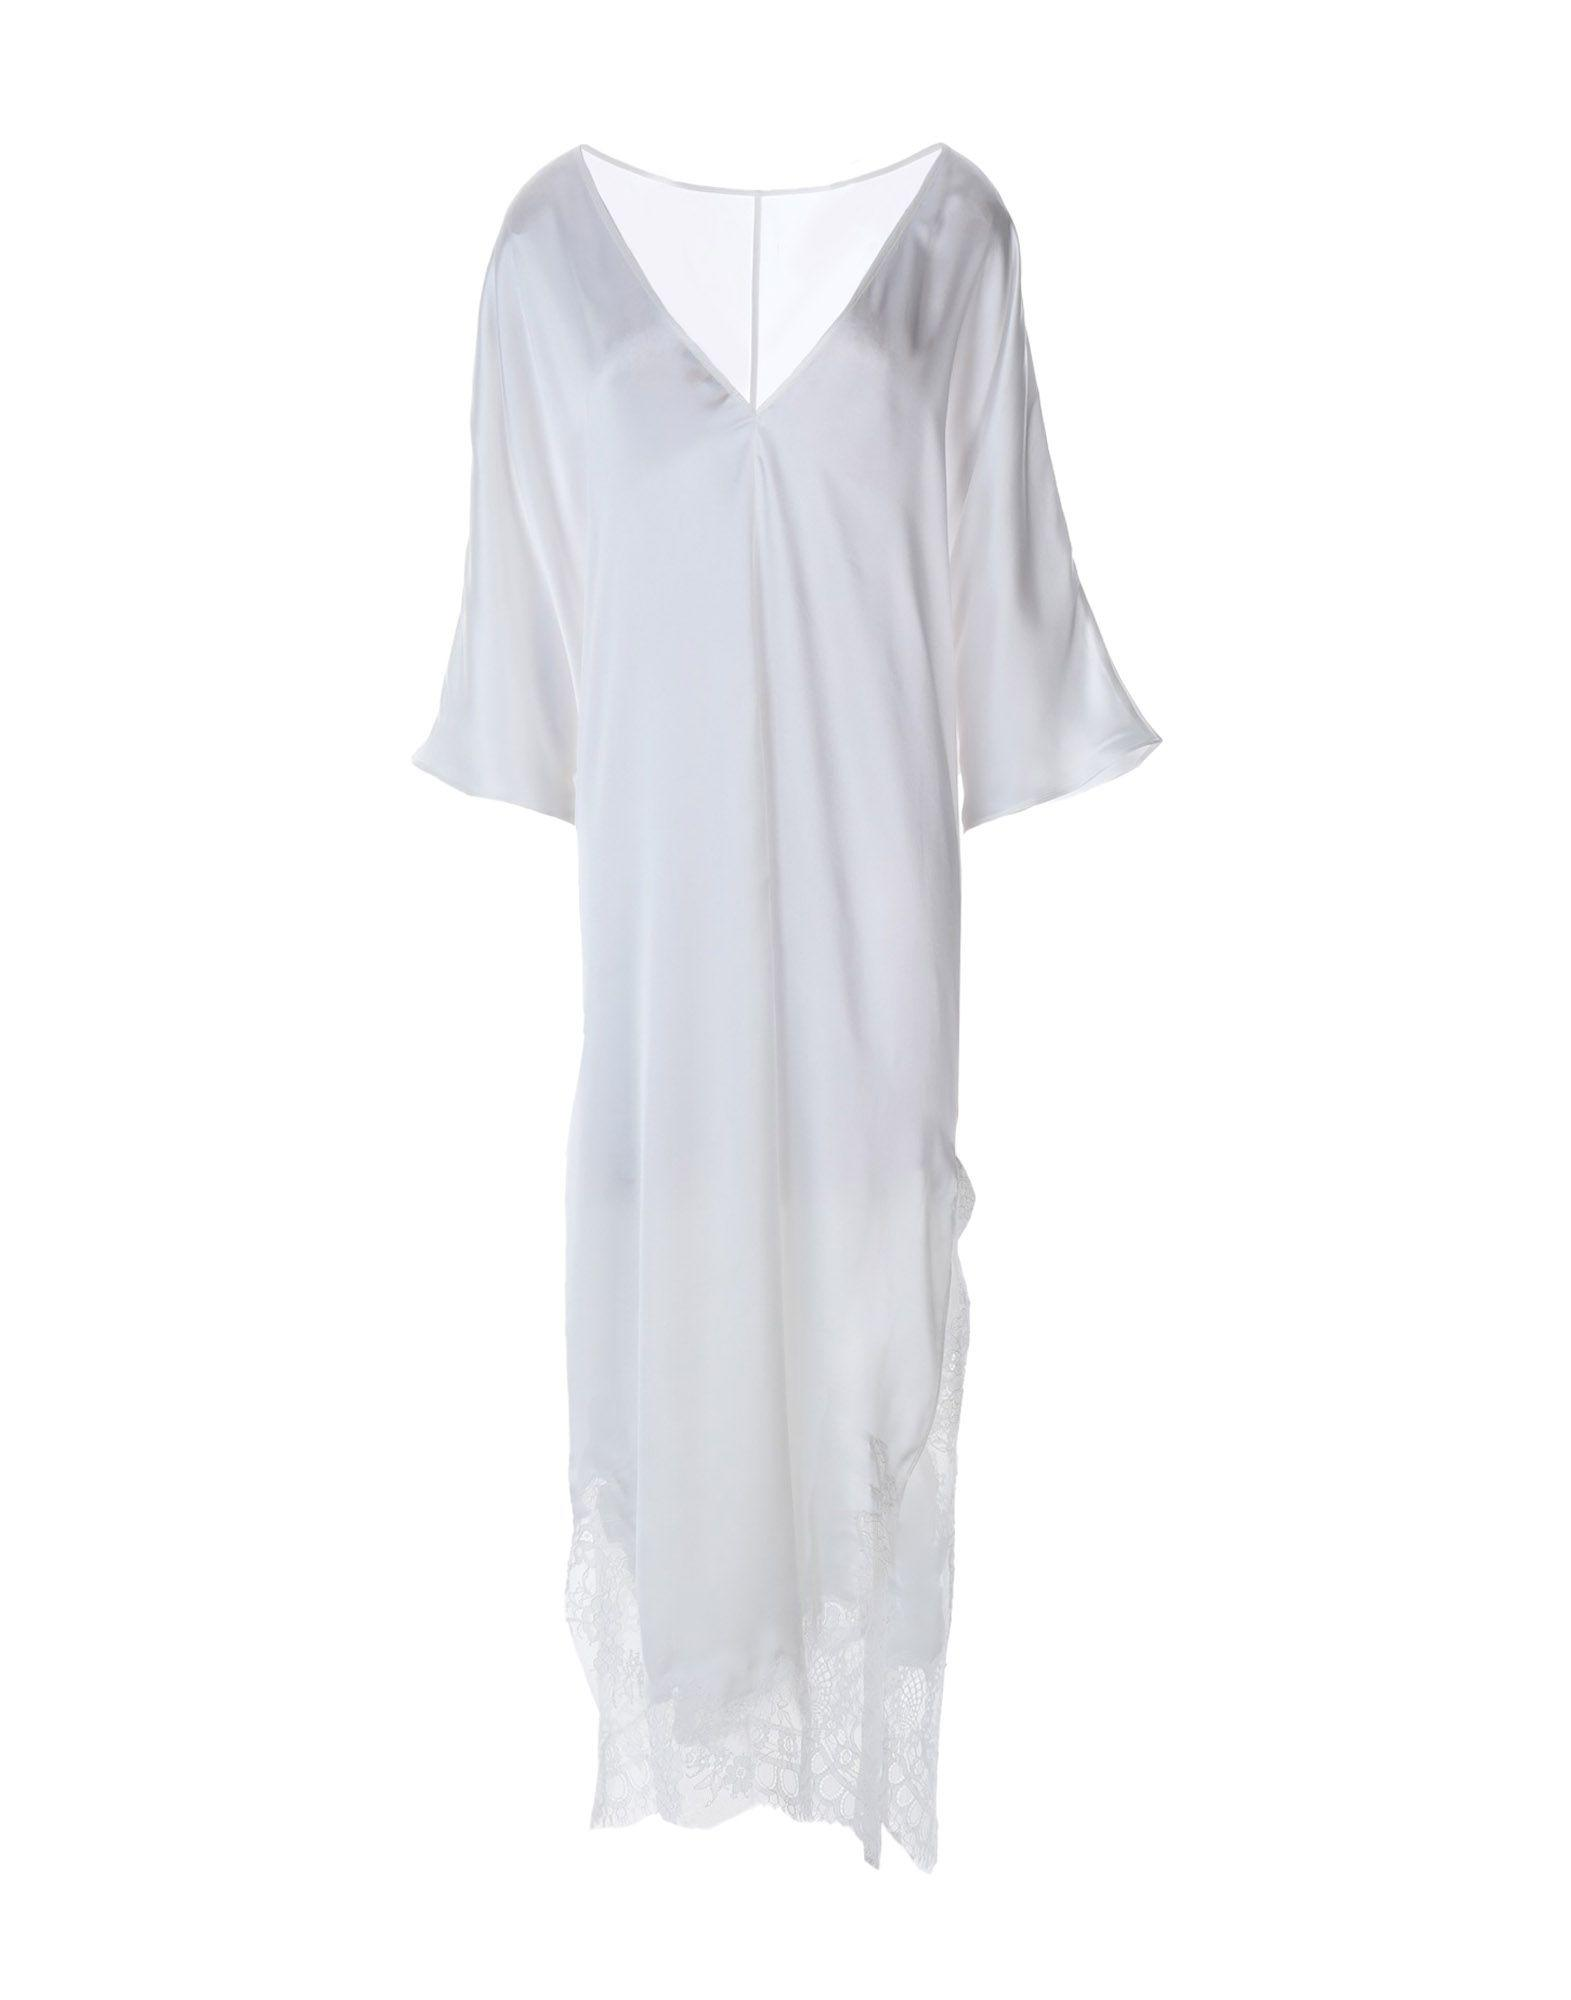 Lyst - Ermanno Scervino Nightgowns in White